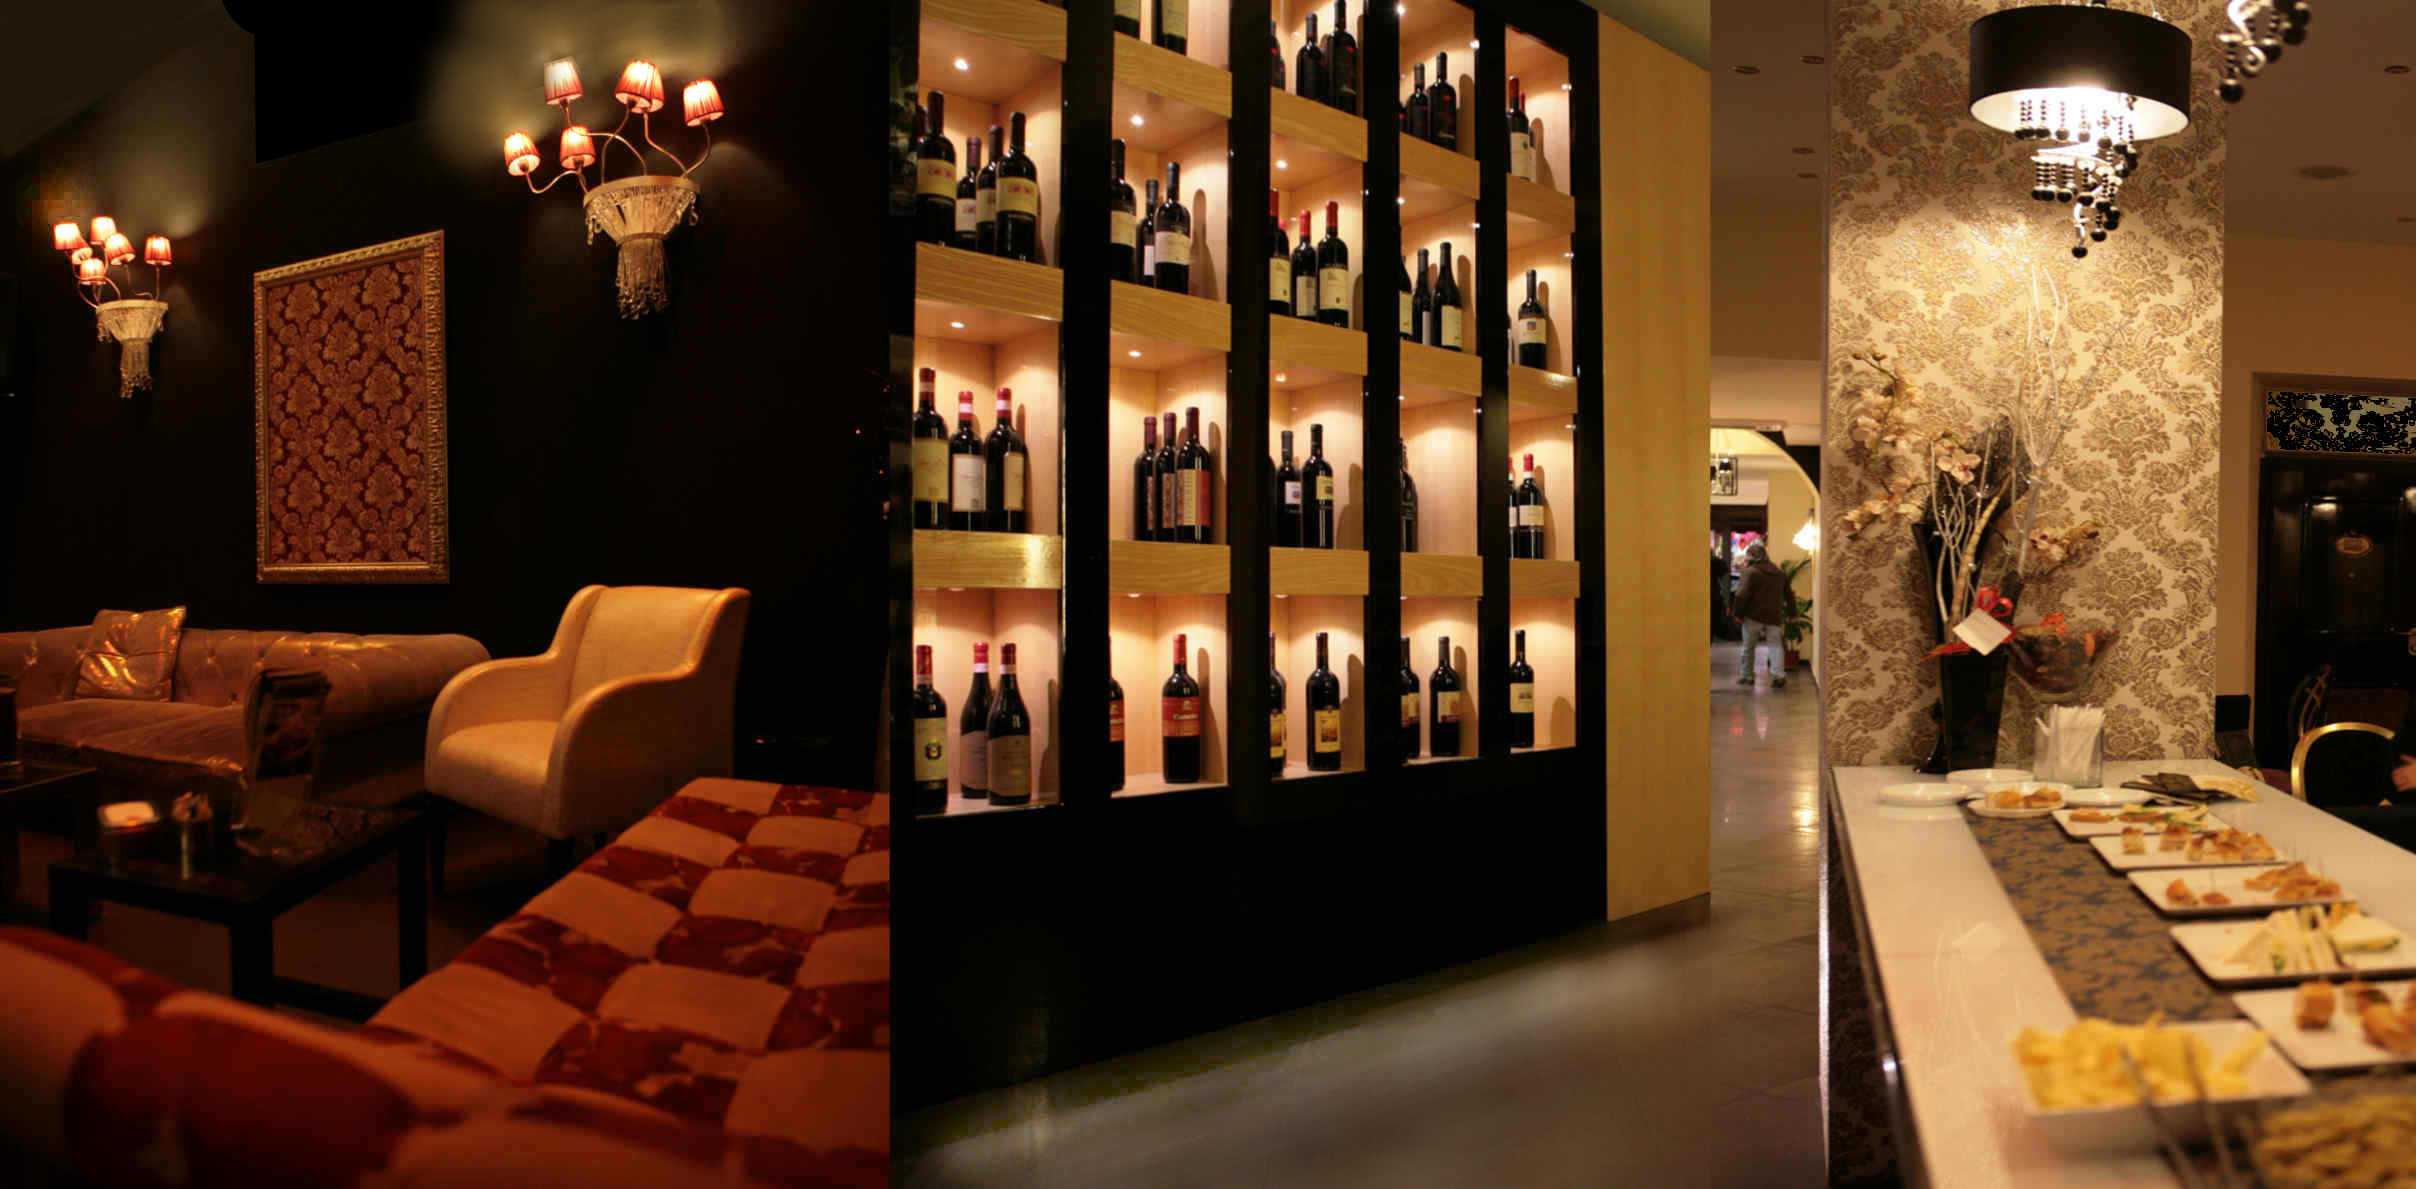 Arredamento wine bar roma for Arredamento in roma